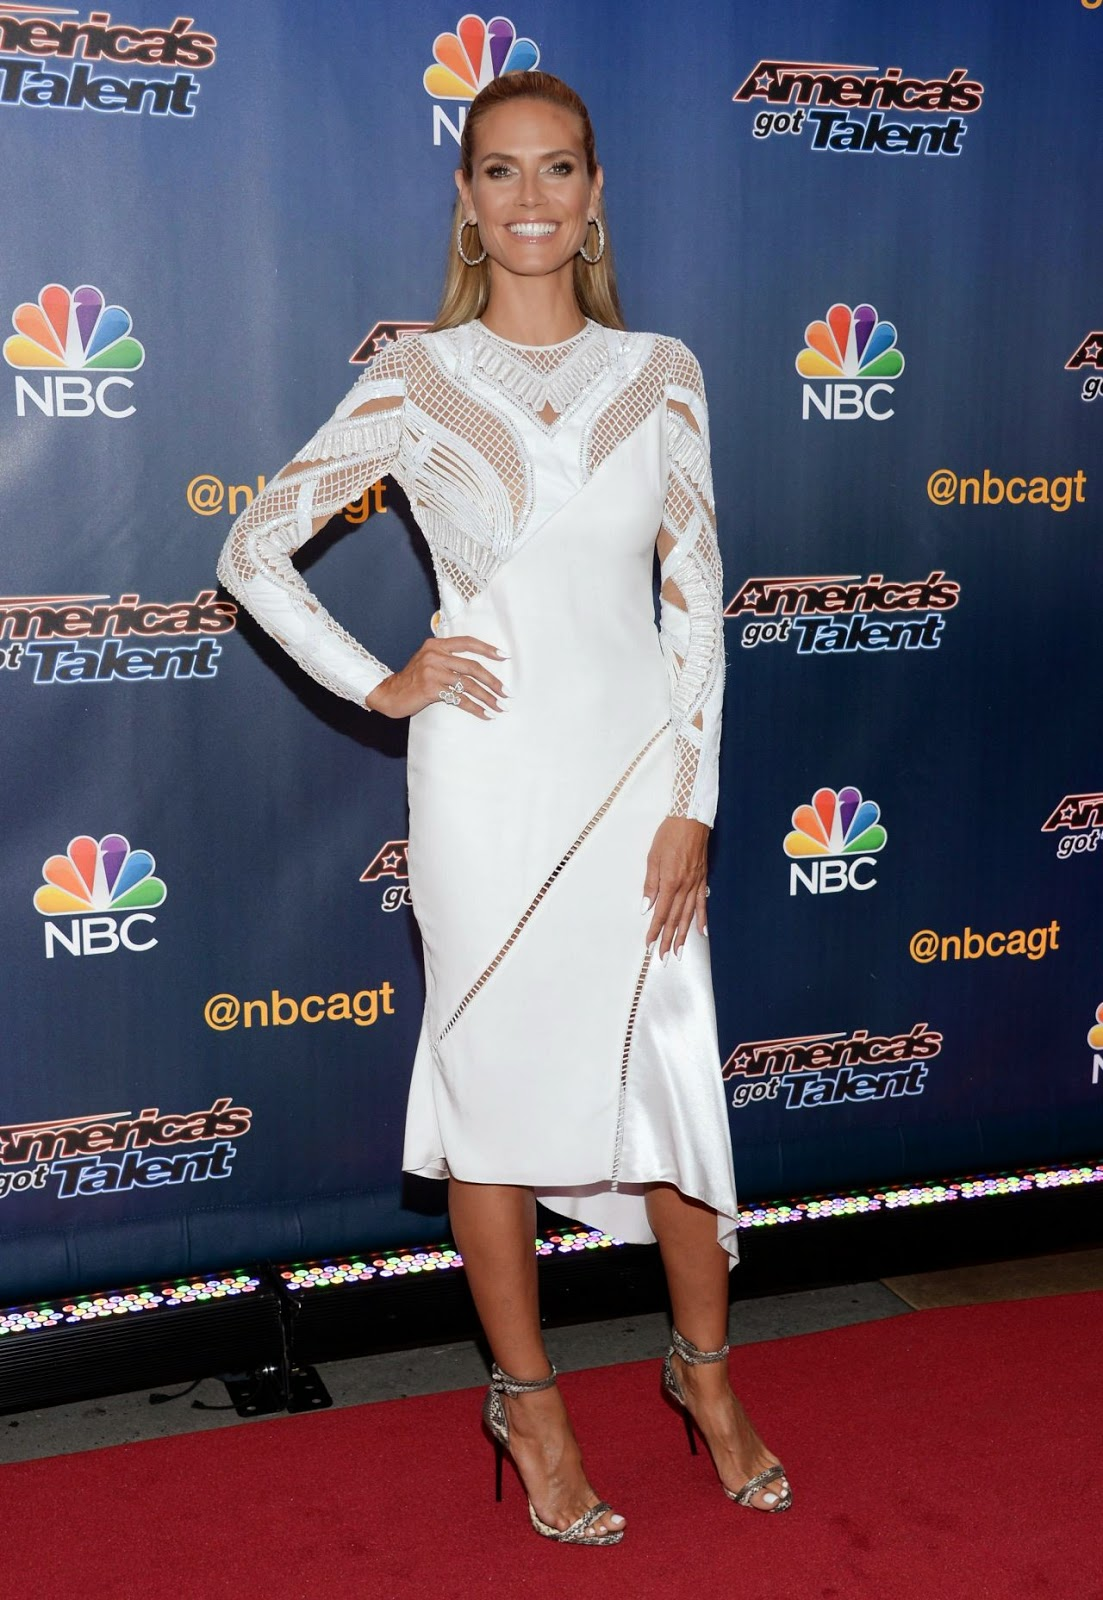 Heidi Klum in a Versace dress at the America's Got Talent Season 9 Pre-Show Event in NYC